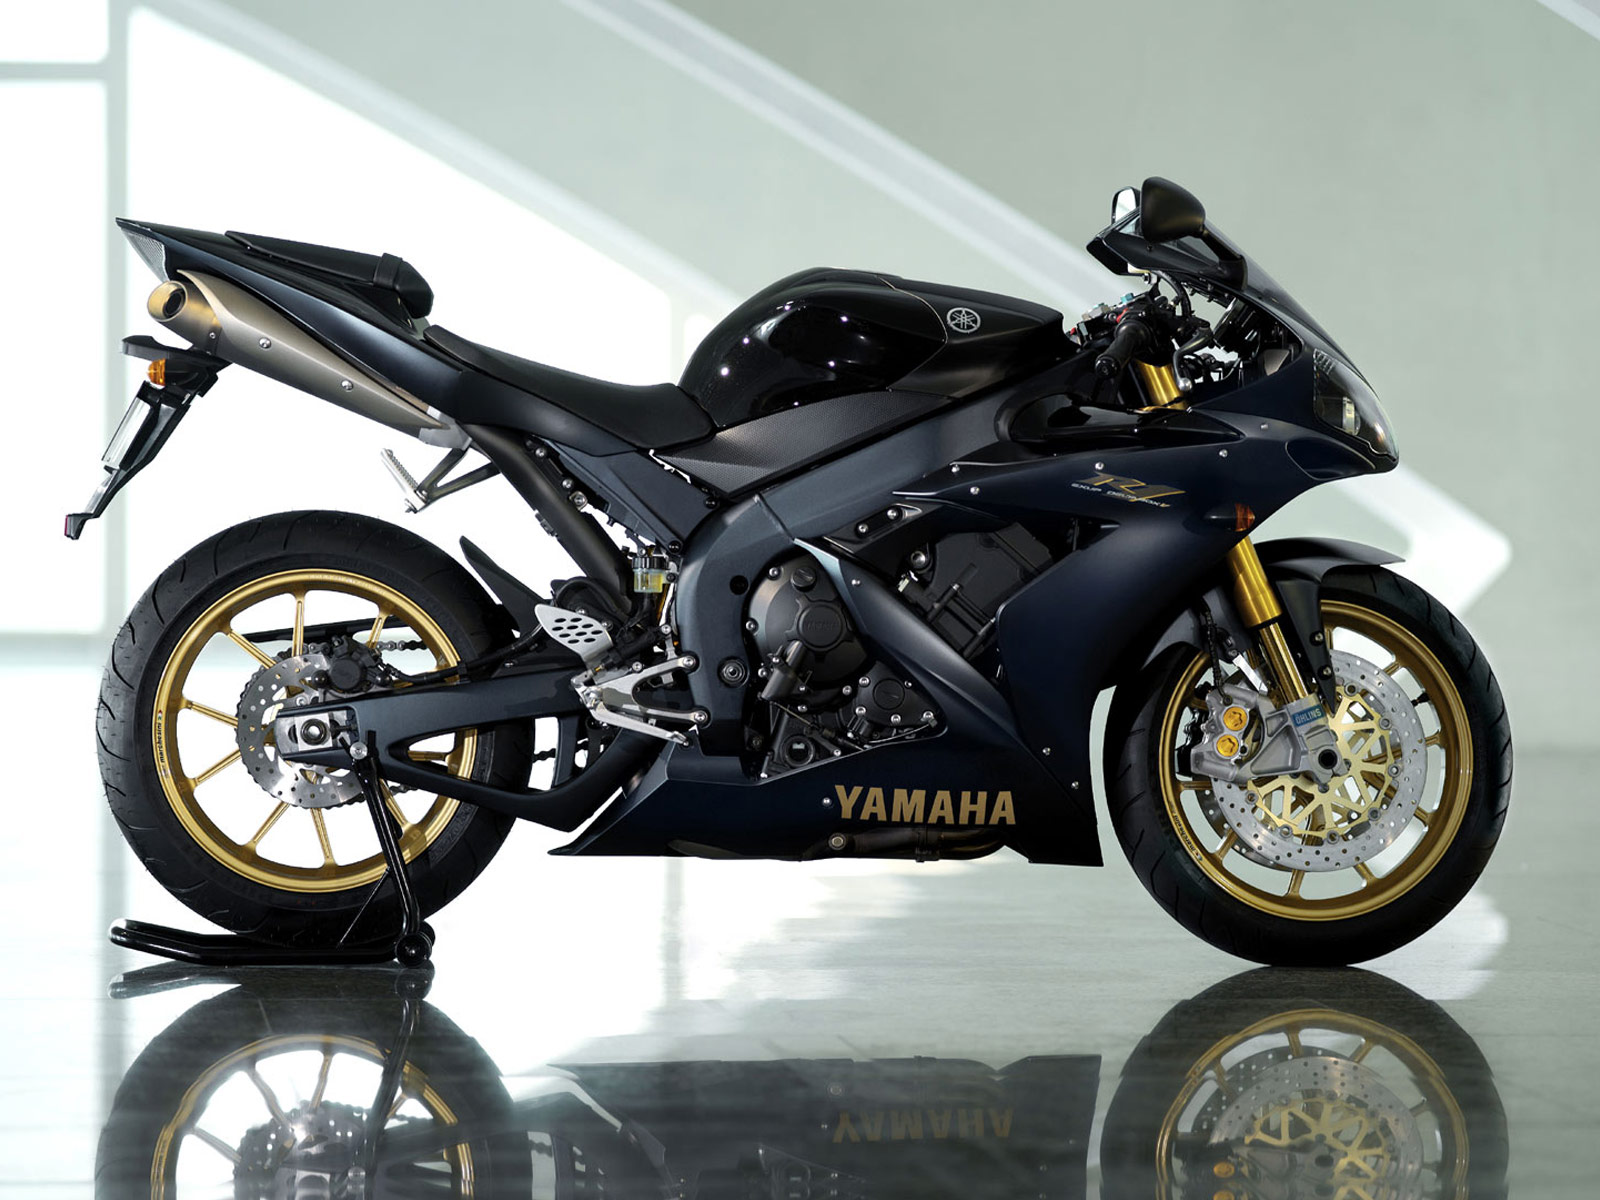 2006 Yamaha Yzf R1sp Pictures Specs Auto Accident